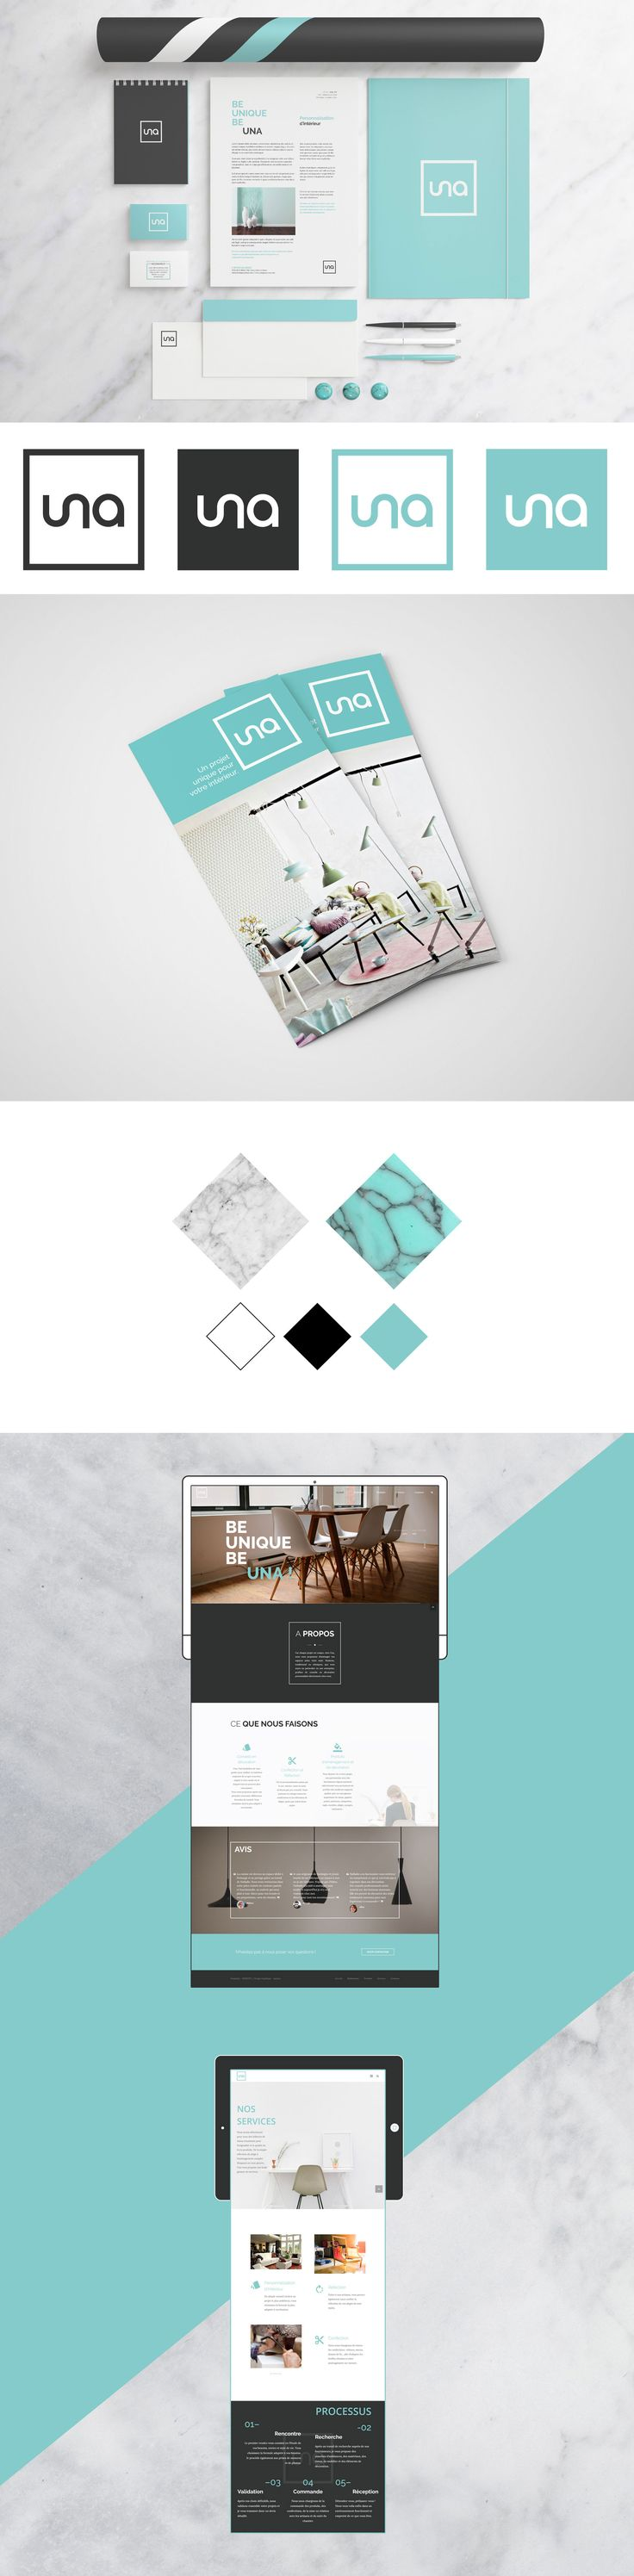 Logo, branding & website for Una, a french interior designer.